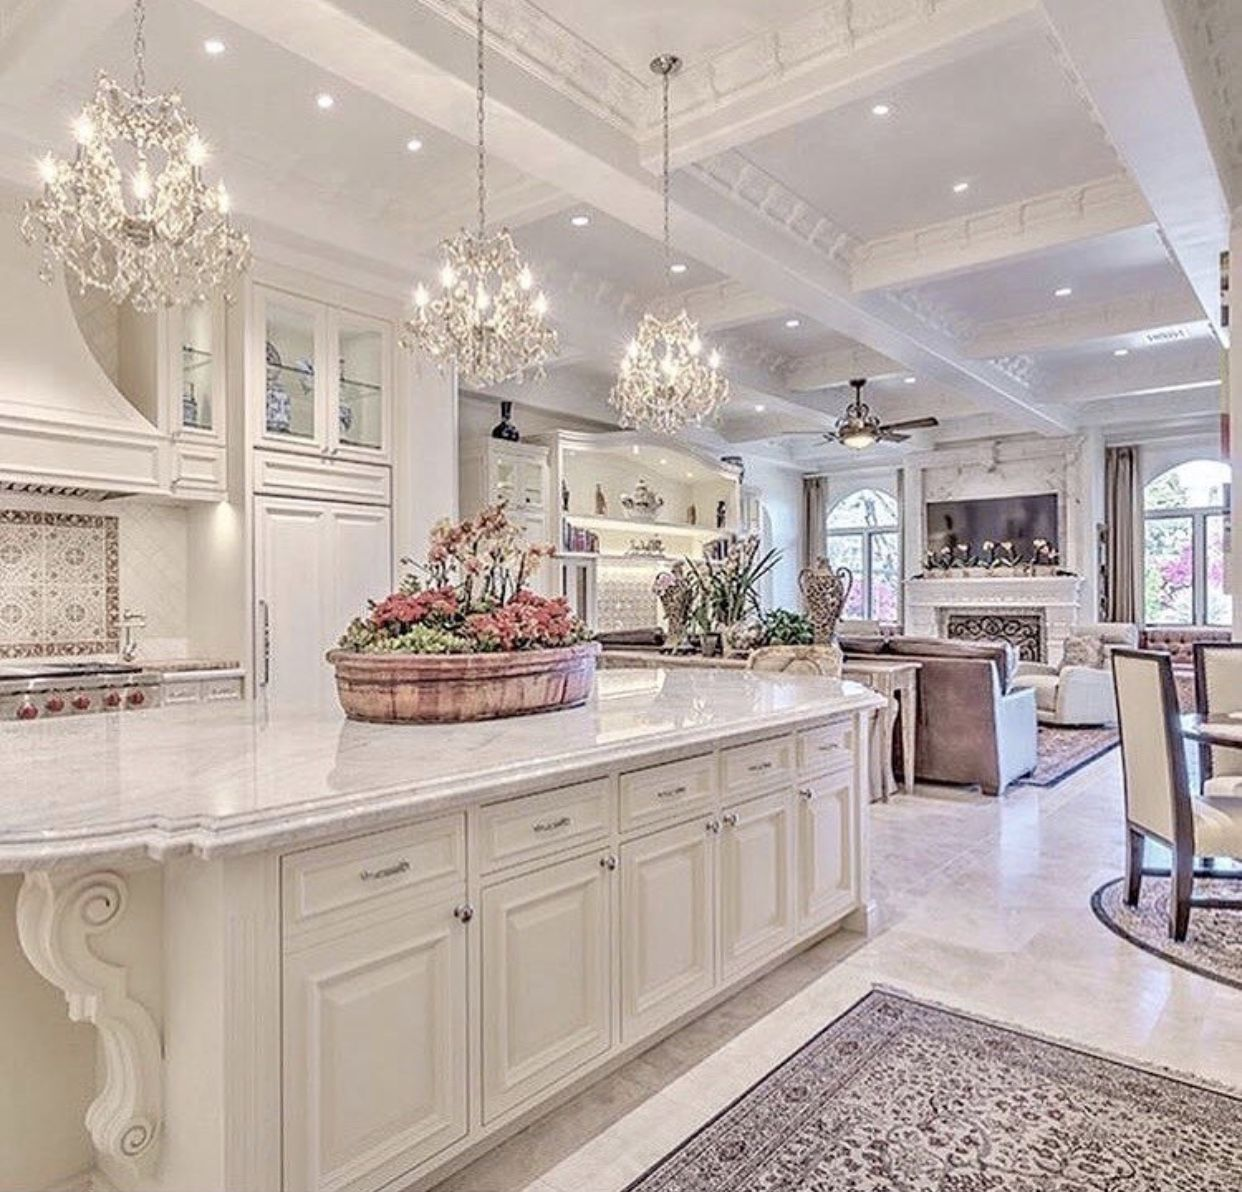 Best Pin By Angela Freeman On Decor Luxury Kitchens Home 400 x 300